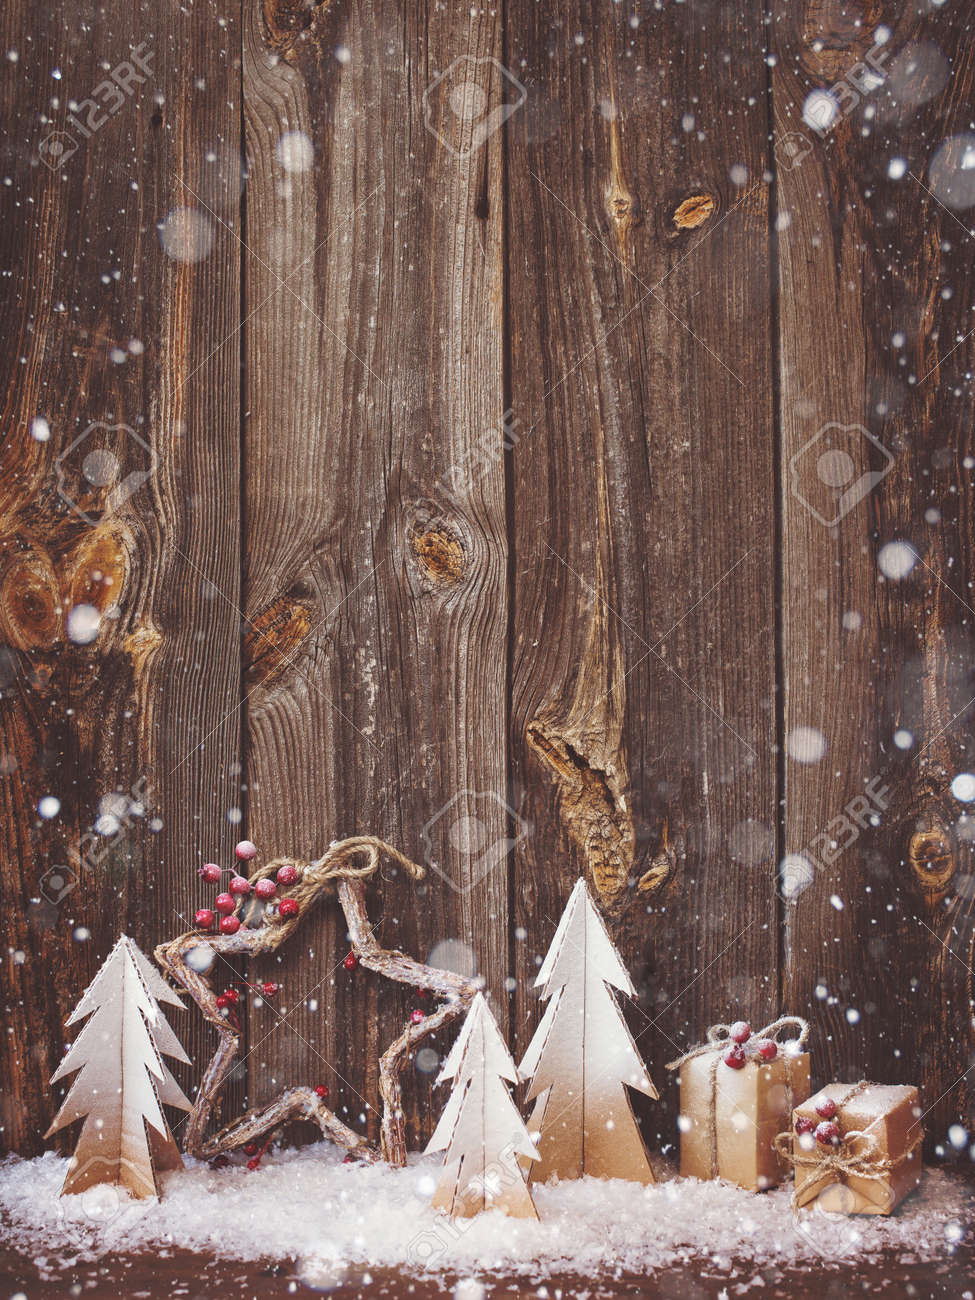 Christmas decoration over wooden background - 85112483